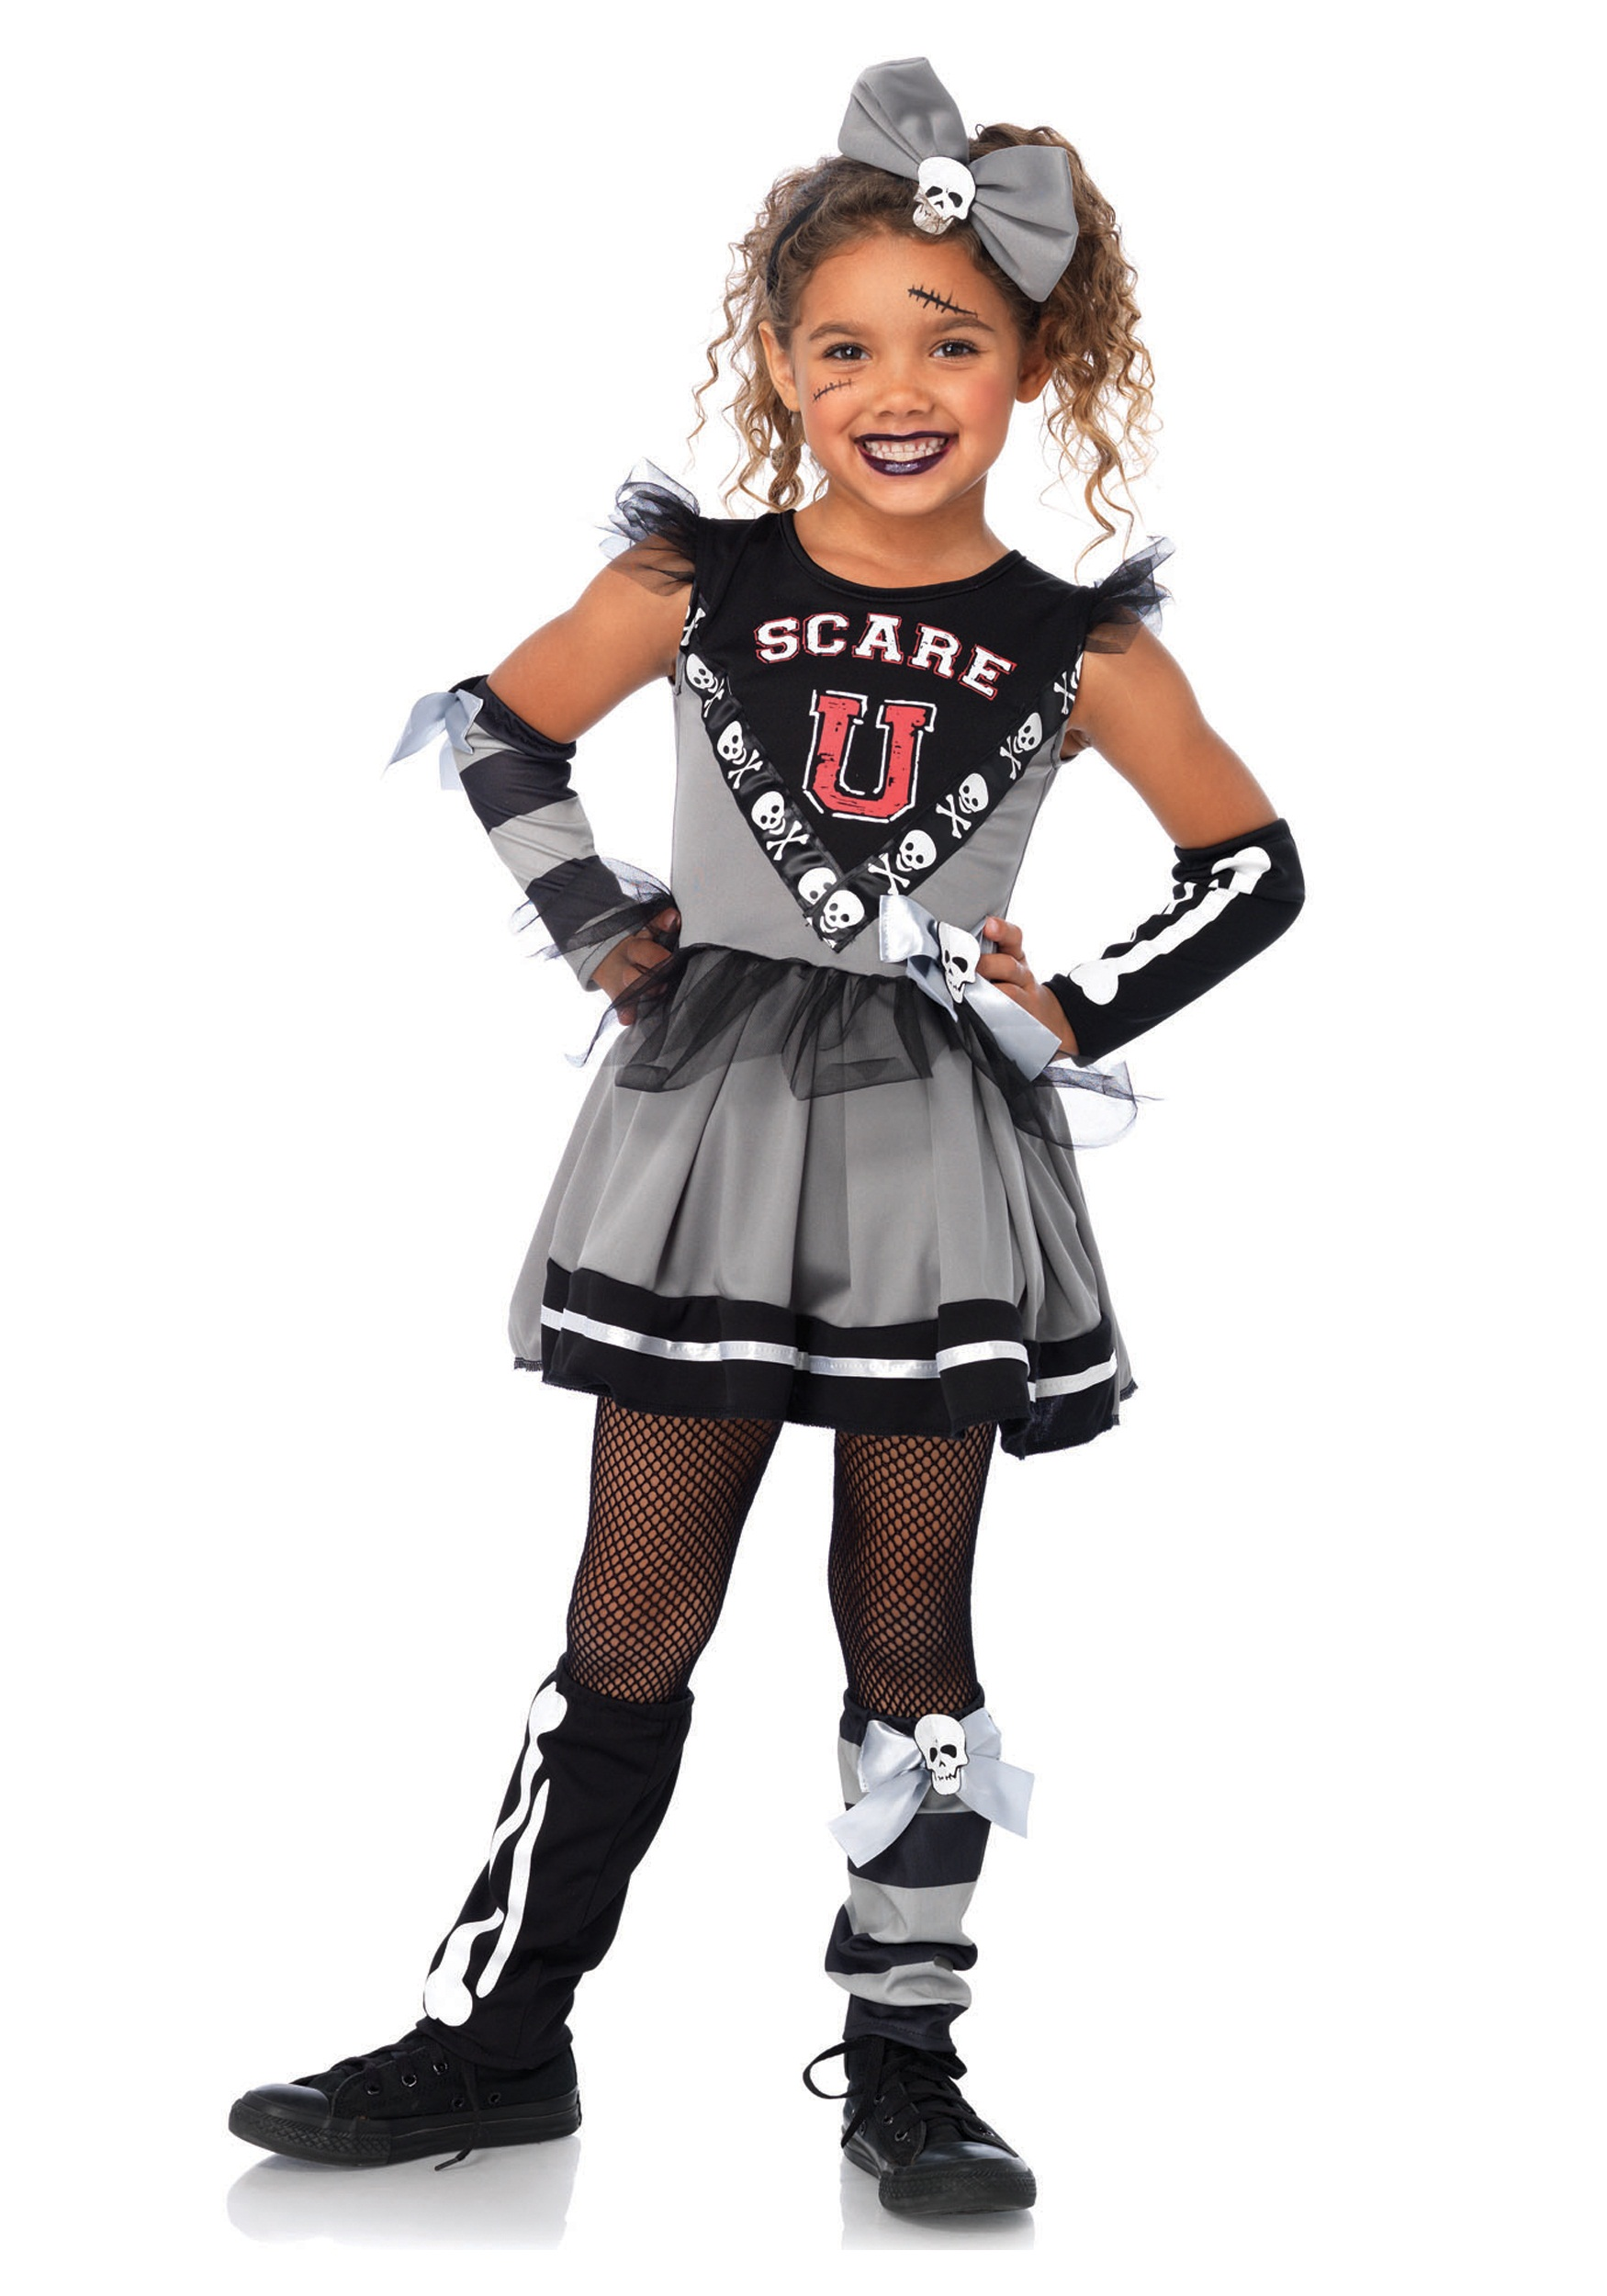 Scare u201cUu201d Cheerleader Child Costume  sc 1 st  Halloween Costumes & Scare